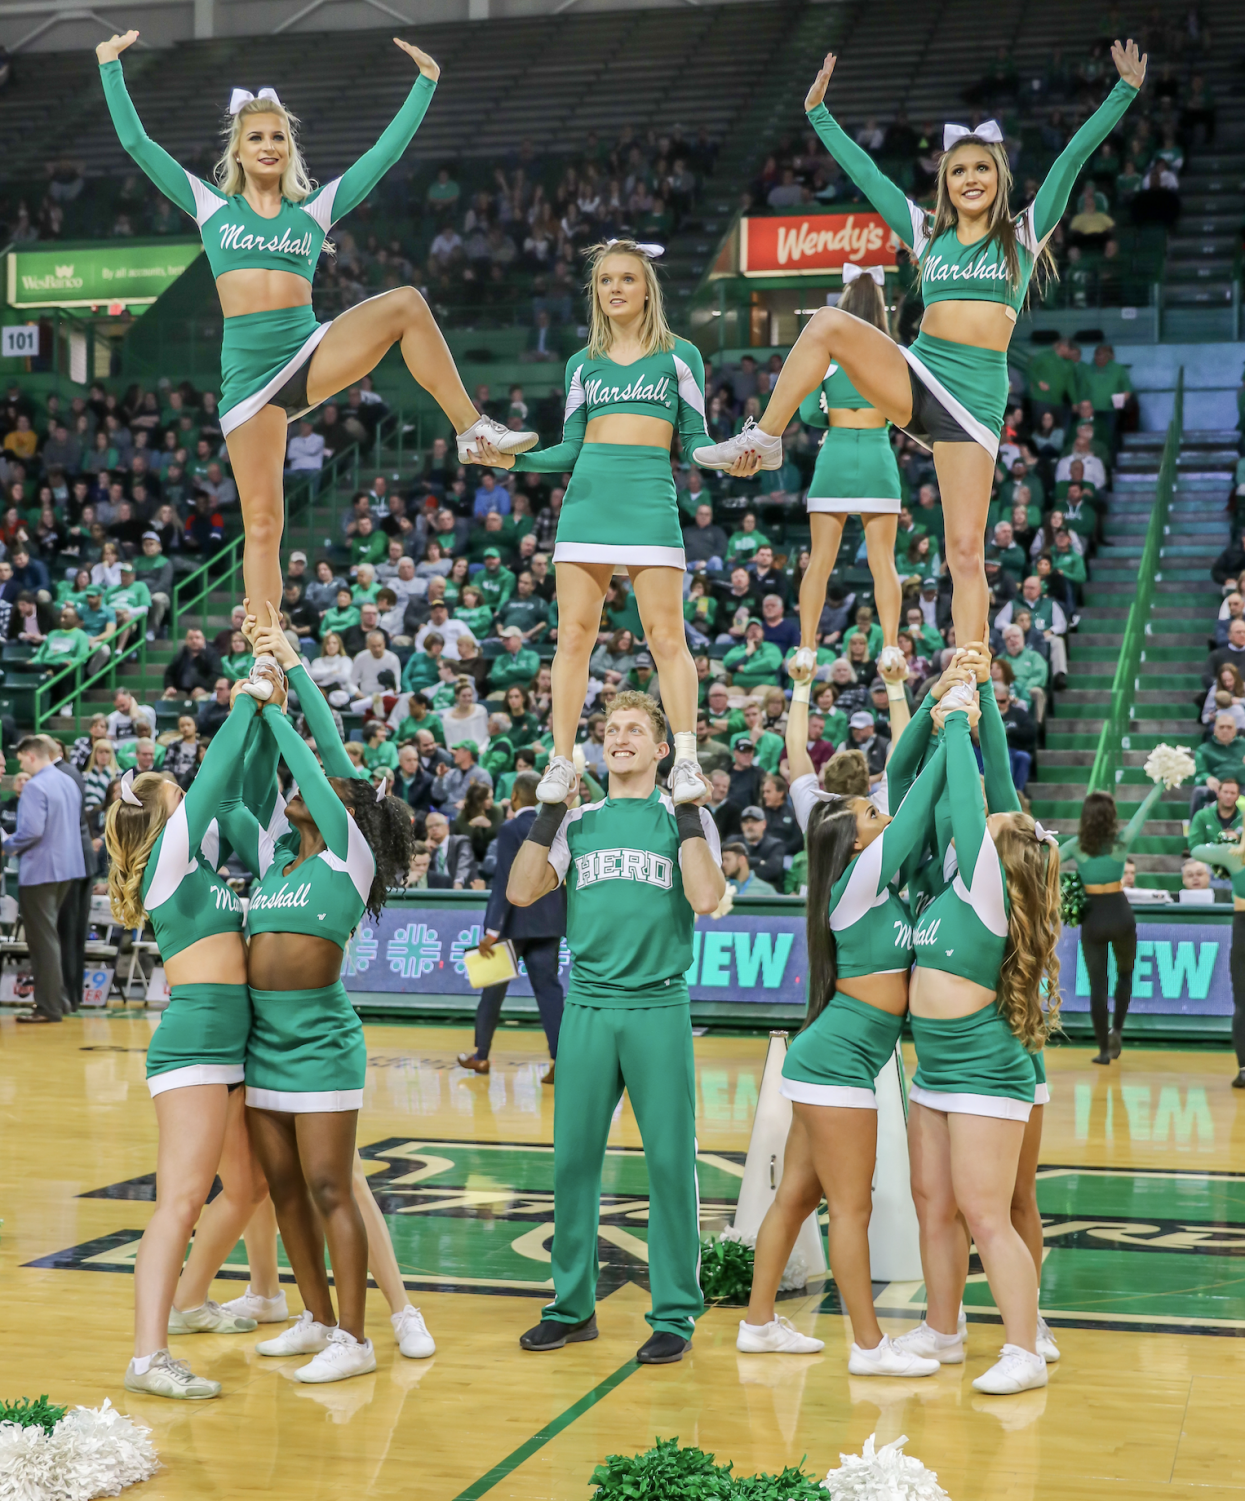 Marshall cheerleaders pose in a stunt before the men's basketball game versus UTEP on Jan. 31 in the Cam Henderson Center.